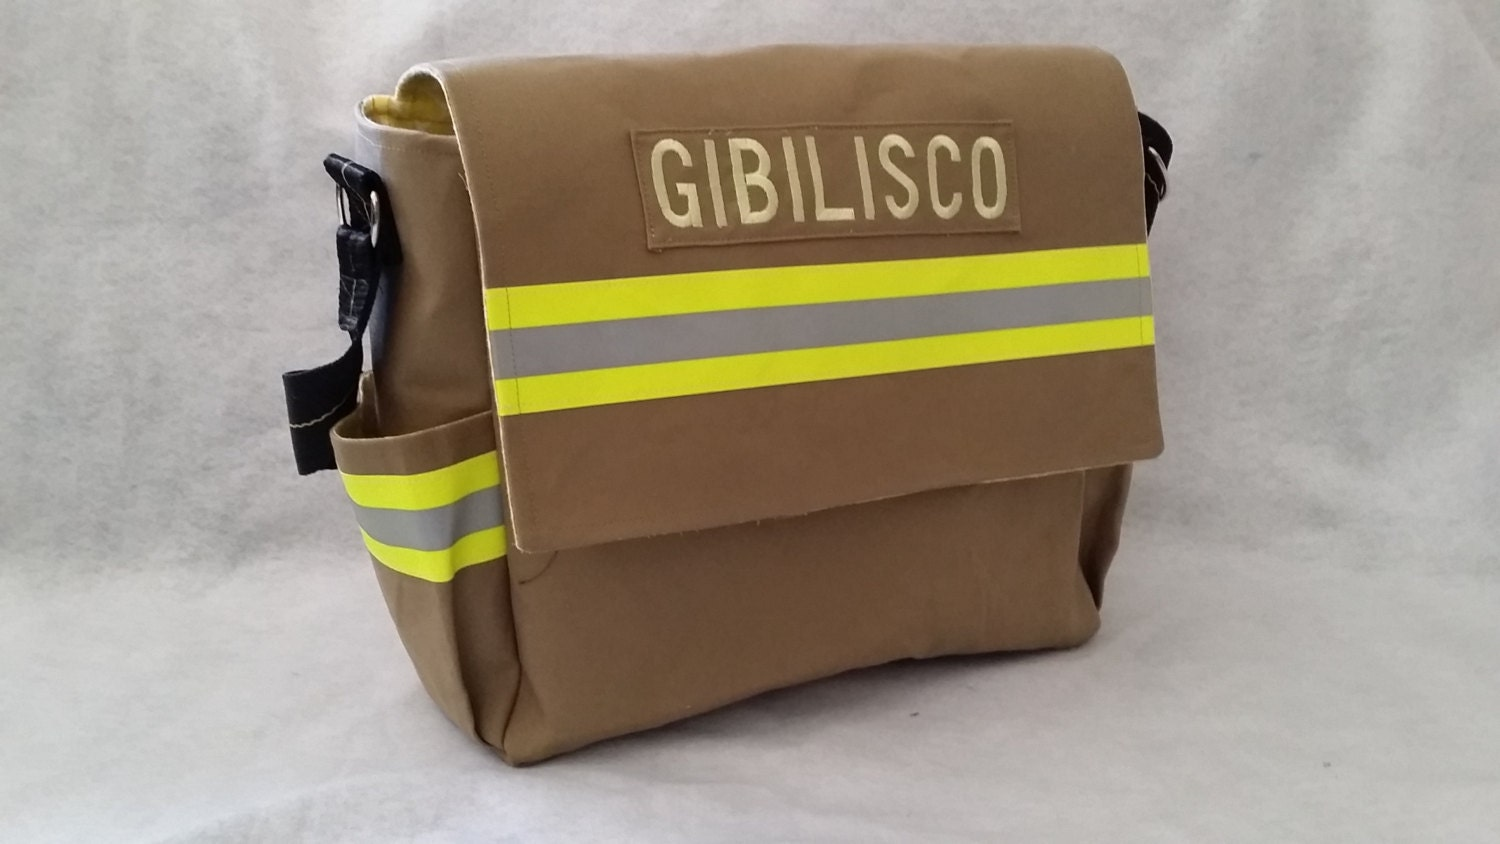 Recycled bunker gear bags - Like This Item